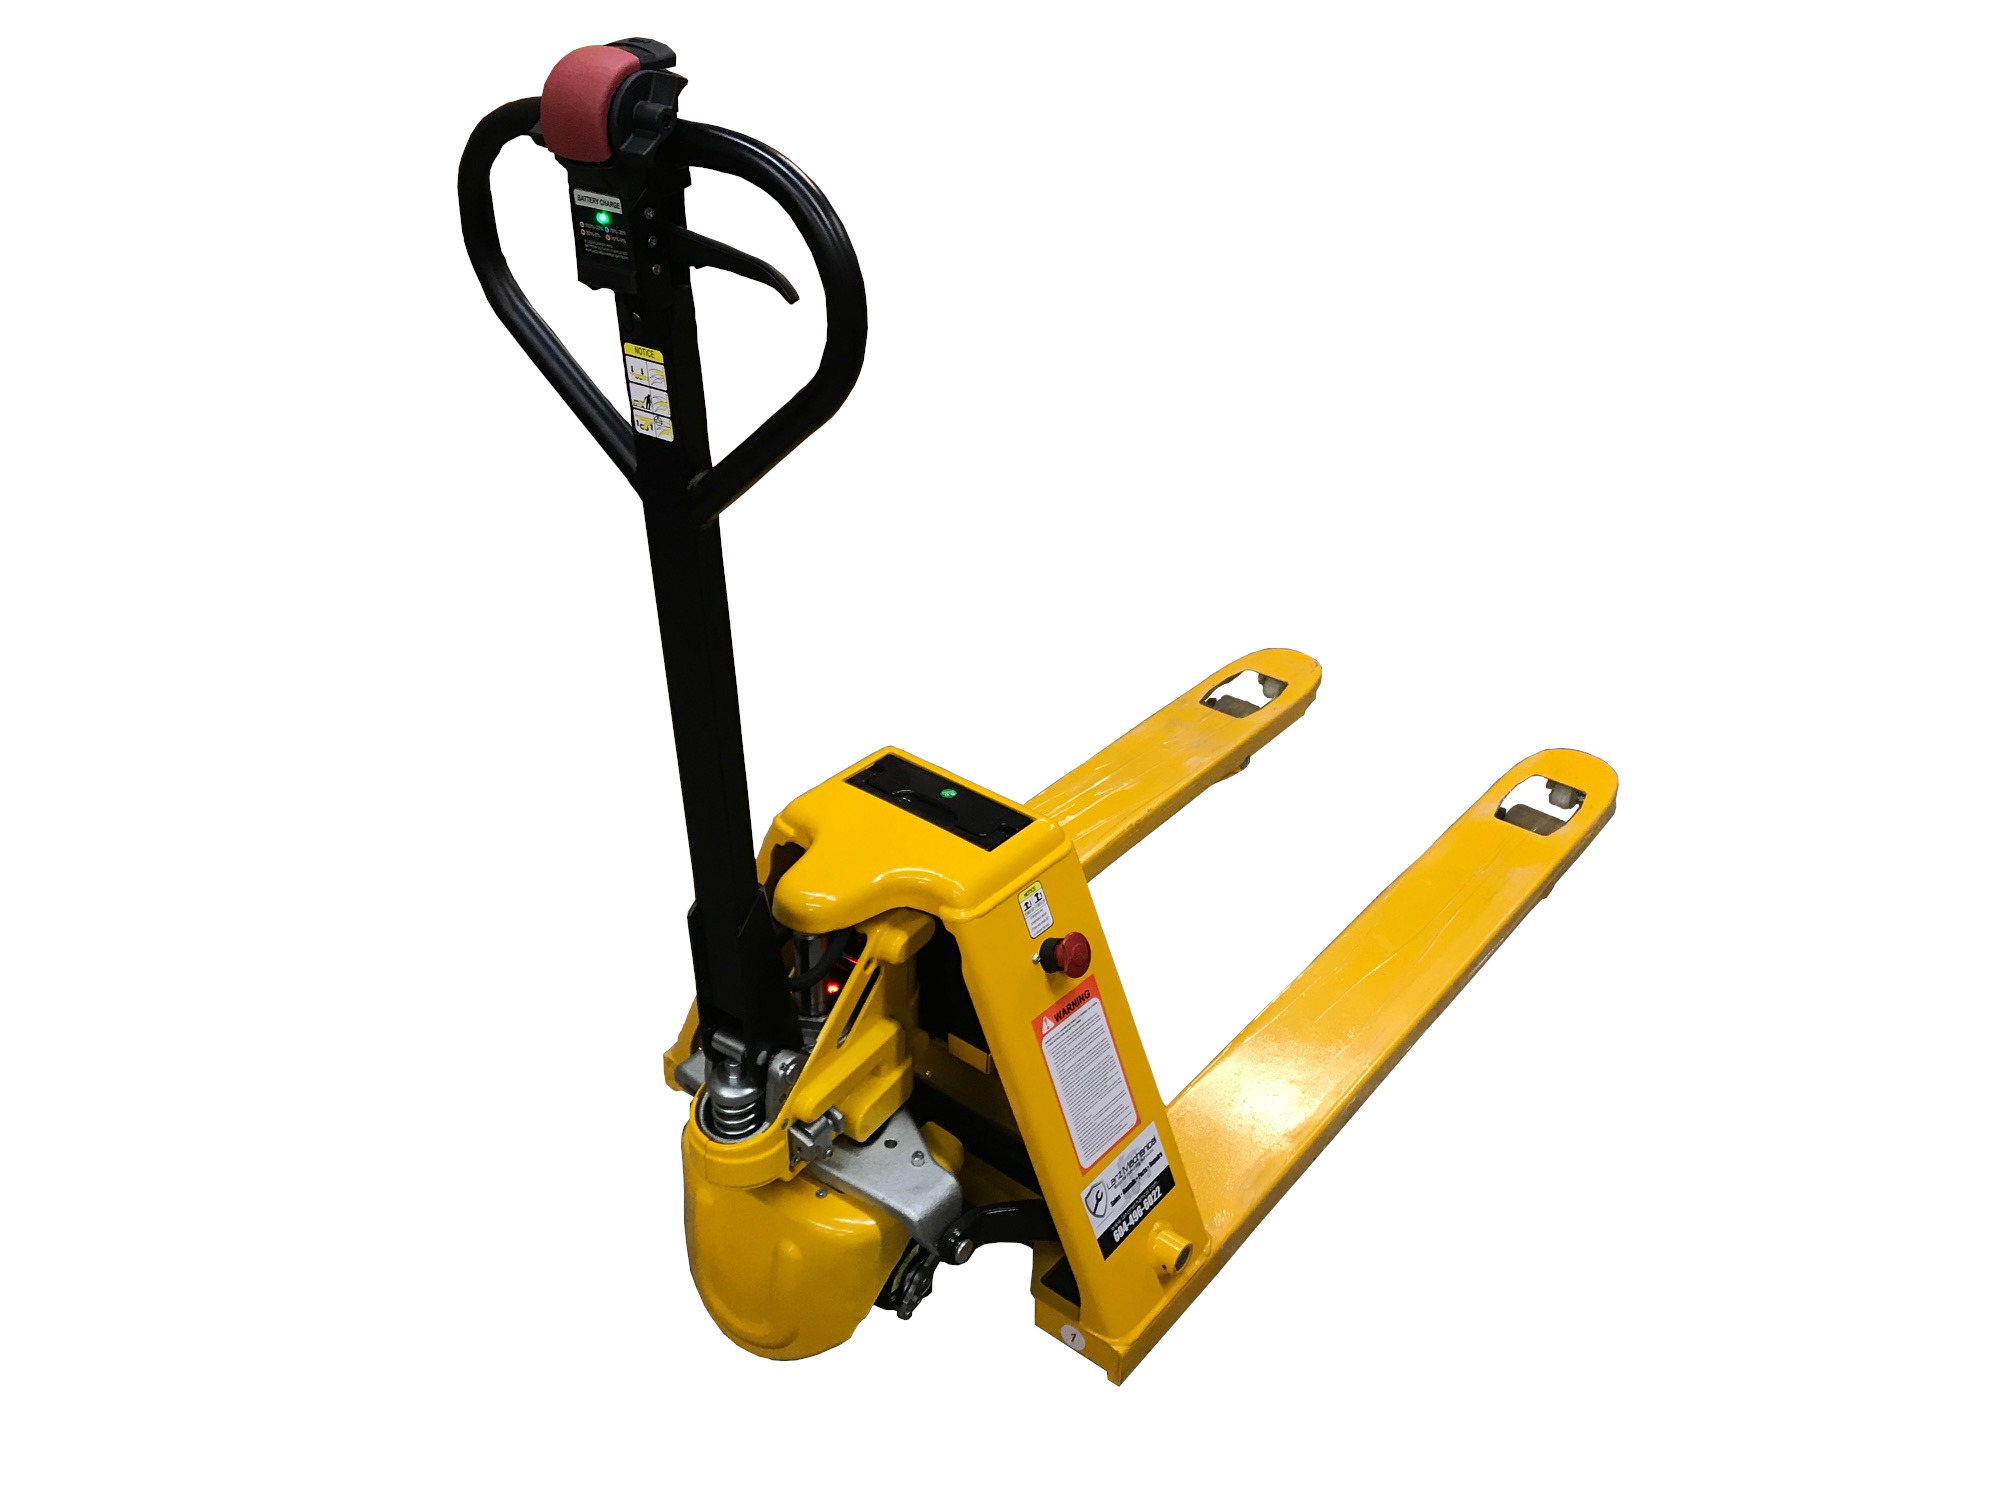 HYBRID FULL-ELECTRIC PALLET TRUCK (4,000 LB Capacity)